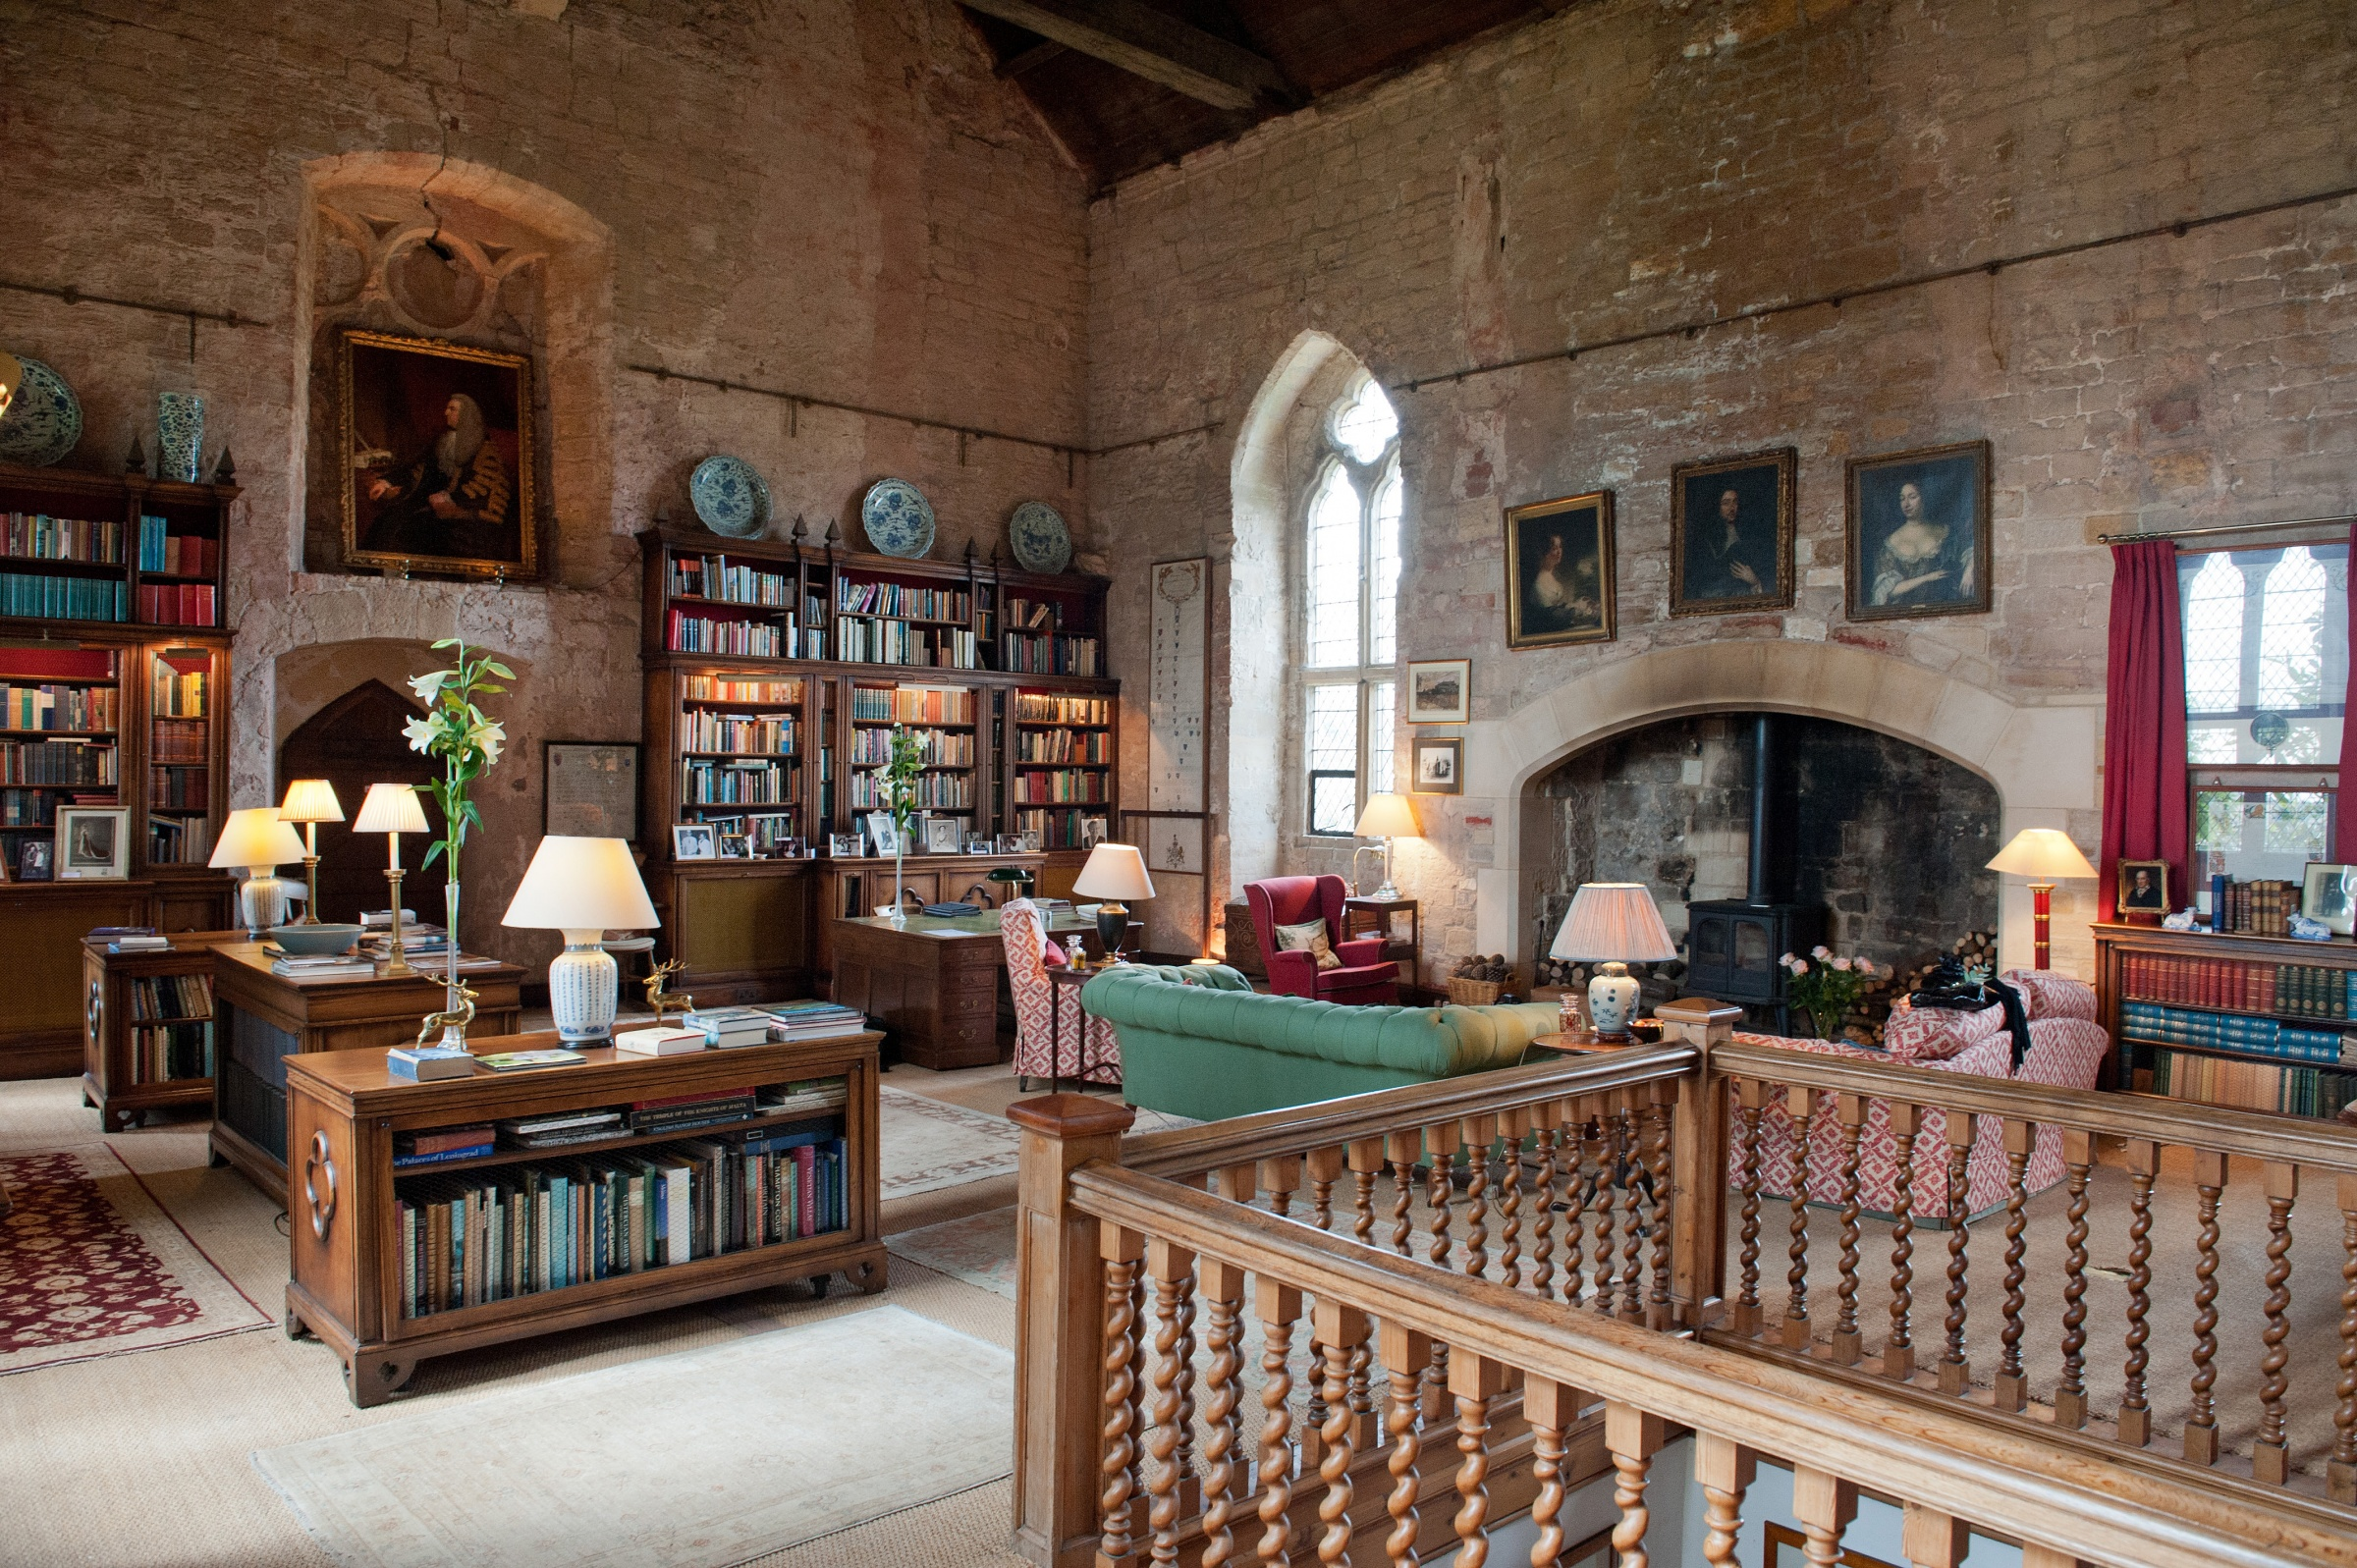 Markenfield Hall in North Yorkshire is a small house – for a glimpse of life in a manor house in late medieval England, this is the place.